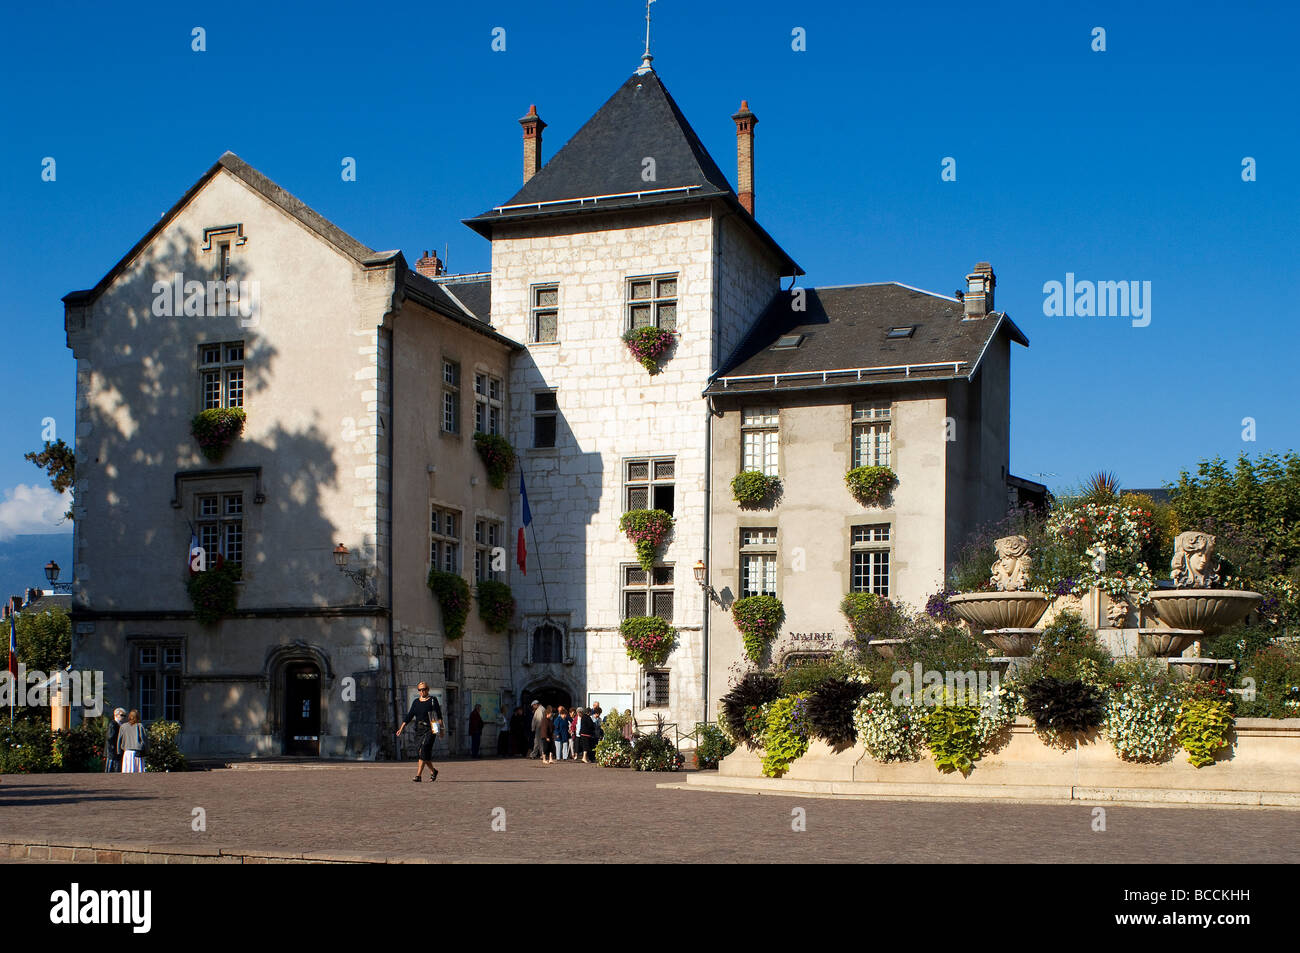 16th Century French Home - france-savoie-aix-les-bains-town-hall-a-16th-century-medieval-castle-BCCKHH_Great 16th Century French Home - france-savoie-aix-les-bains-town-hall-a-16th-century-medieval-castle-BCCKHH  Pic_39258.jpg